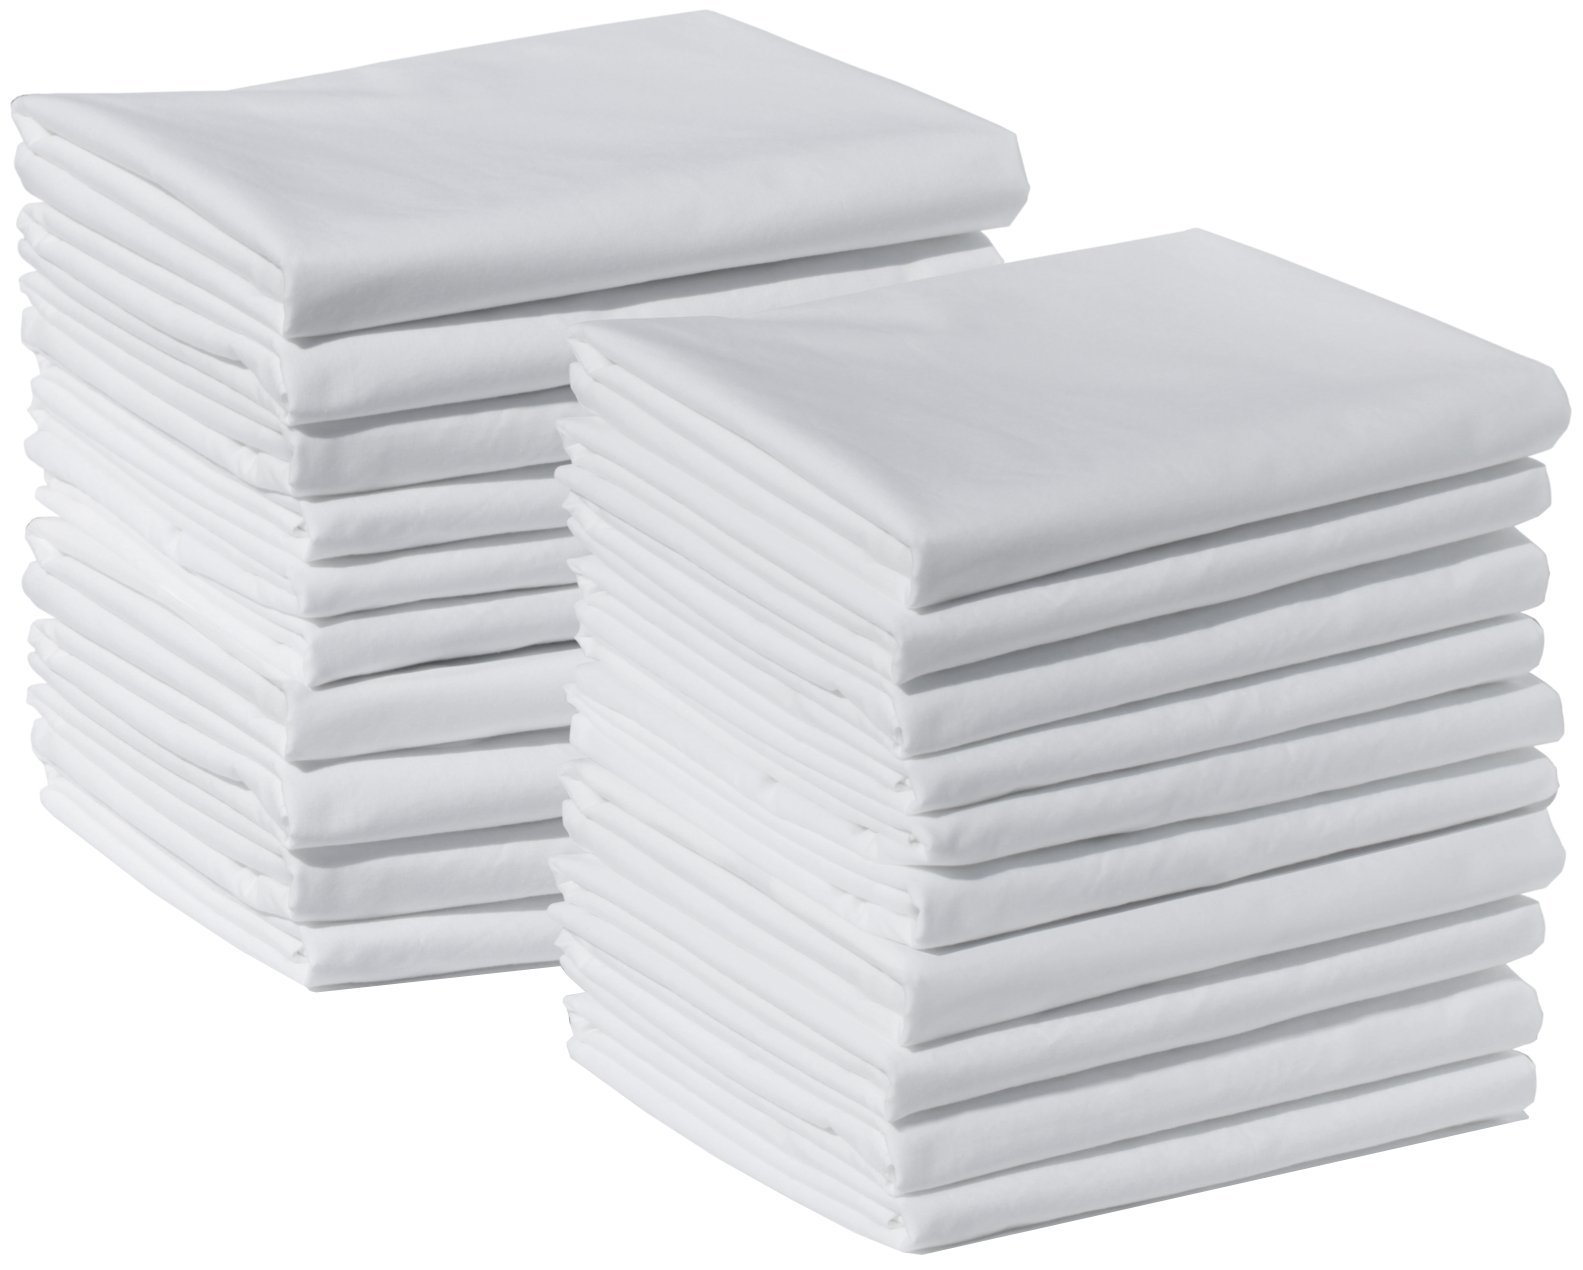 20 King Size 100% Cotton White T220 Percale Wholesale Bulk Discount Pillowcases Shams for Tie-Dying, Silk Screening, Hotels, Crafts, Camps, Parties, Physical Therapy